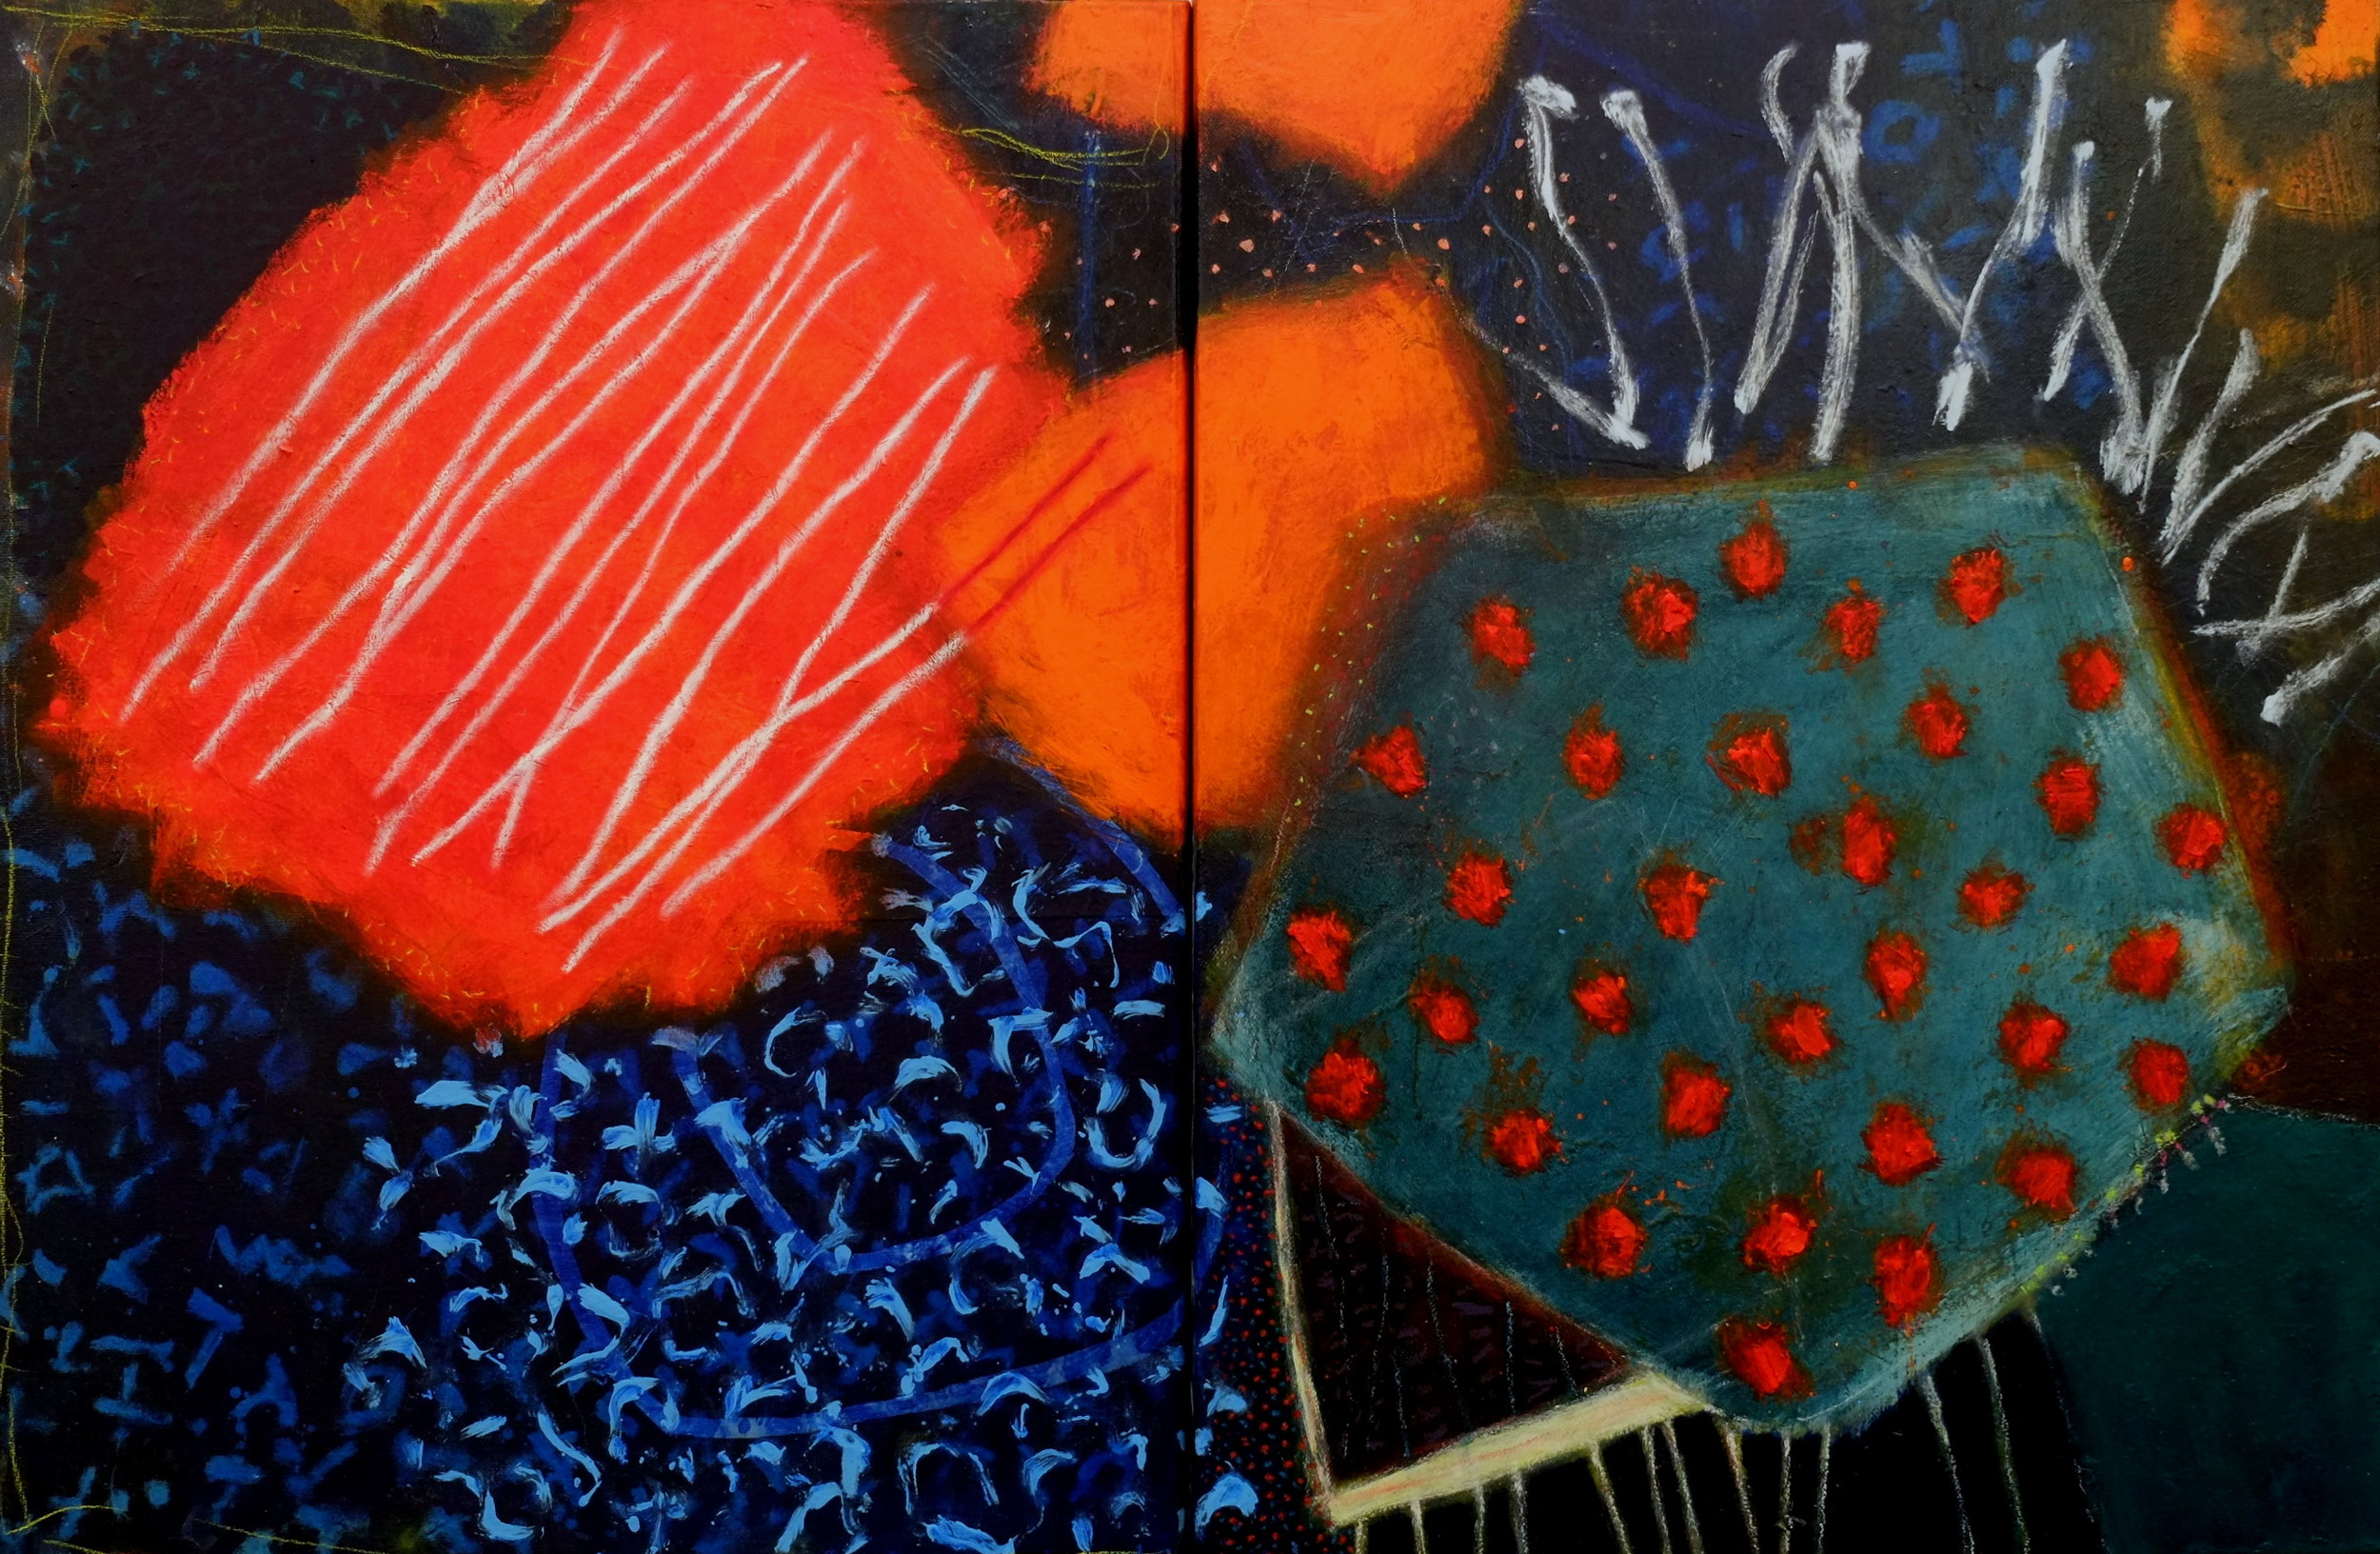 Paradoxical exercises regarding the thinking of stones II  (2014-16; acrylic and mixed media on two canvases)